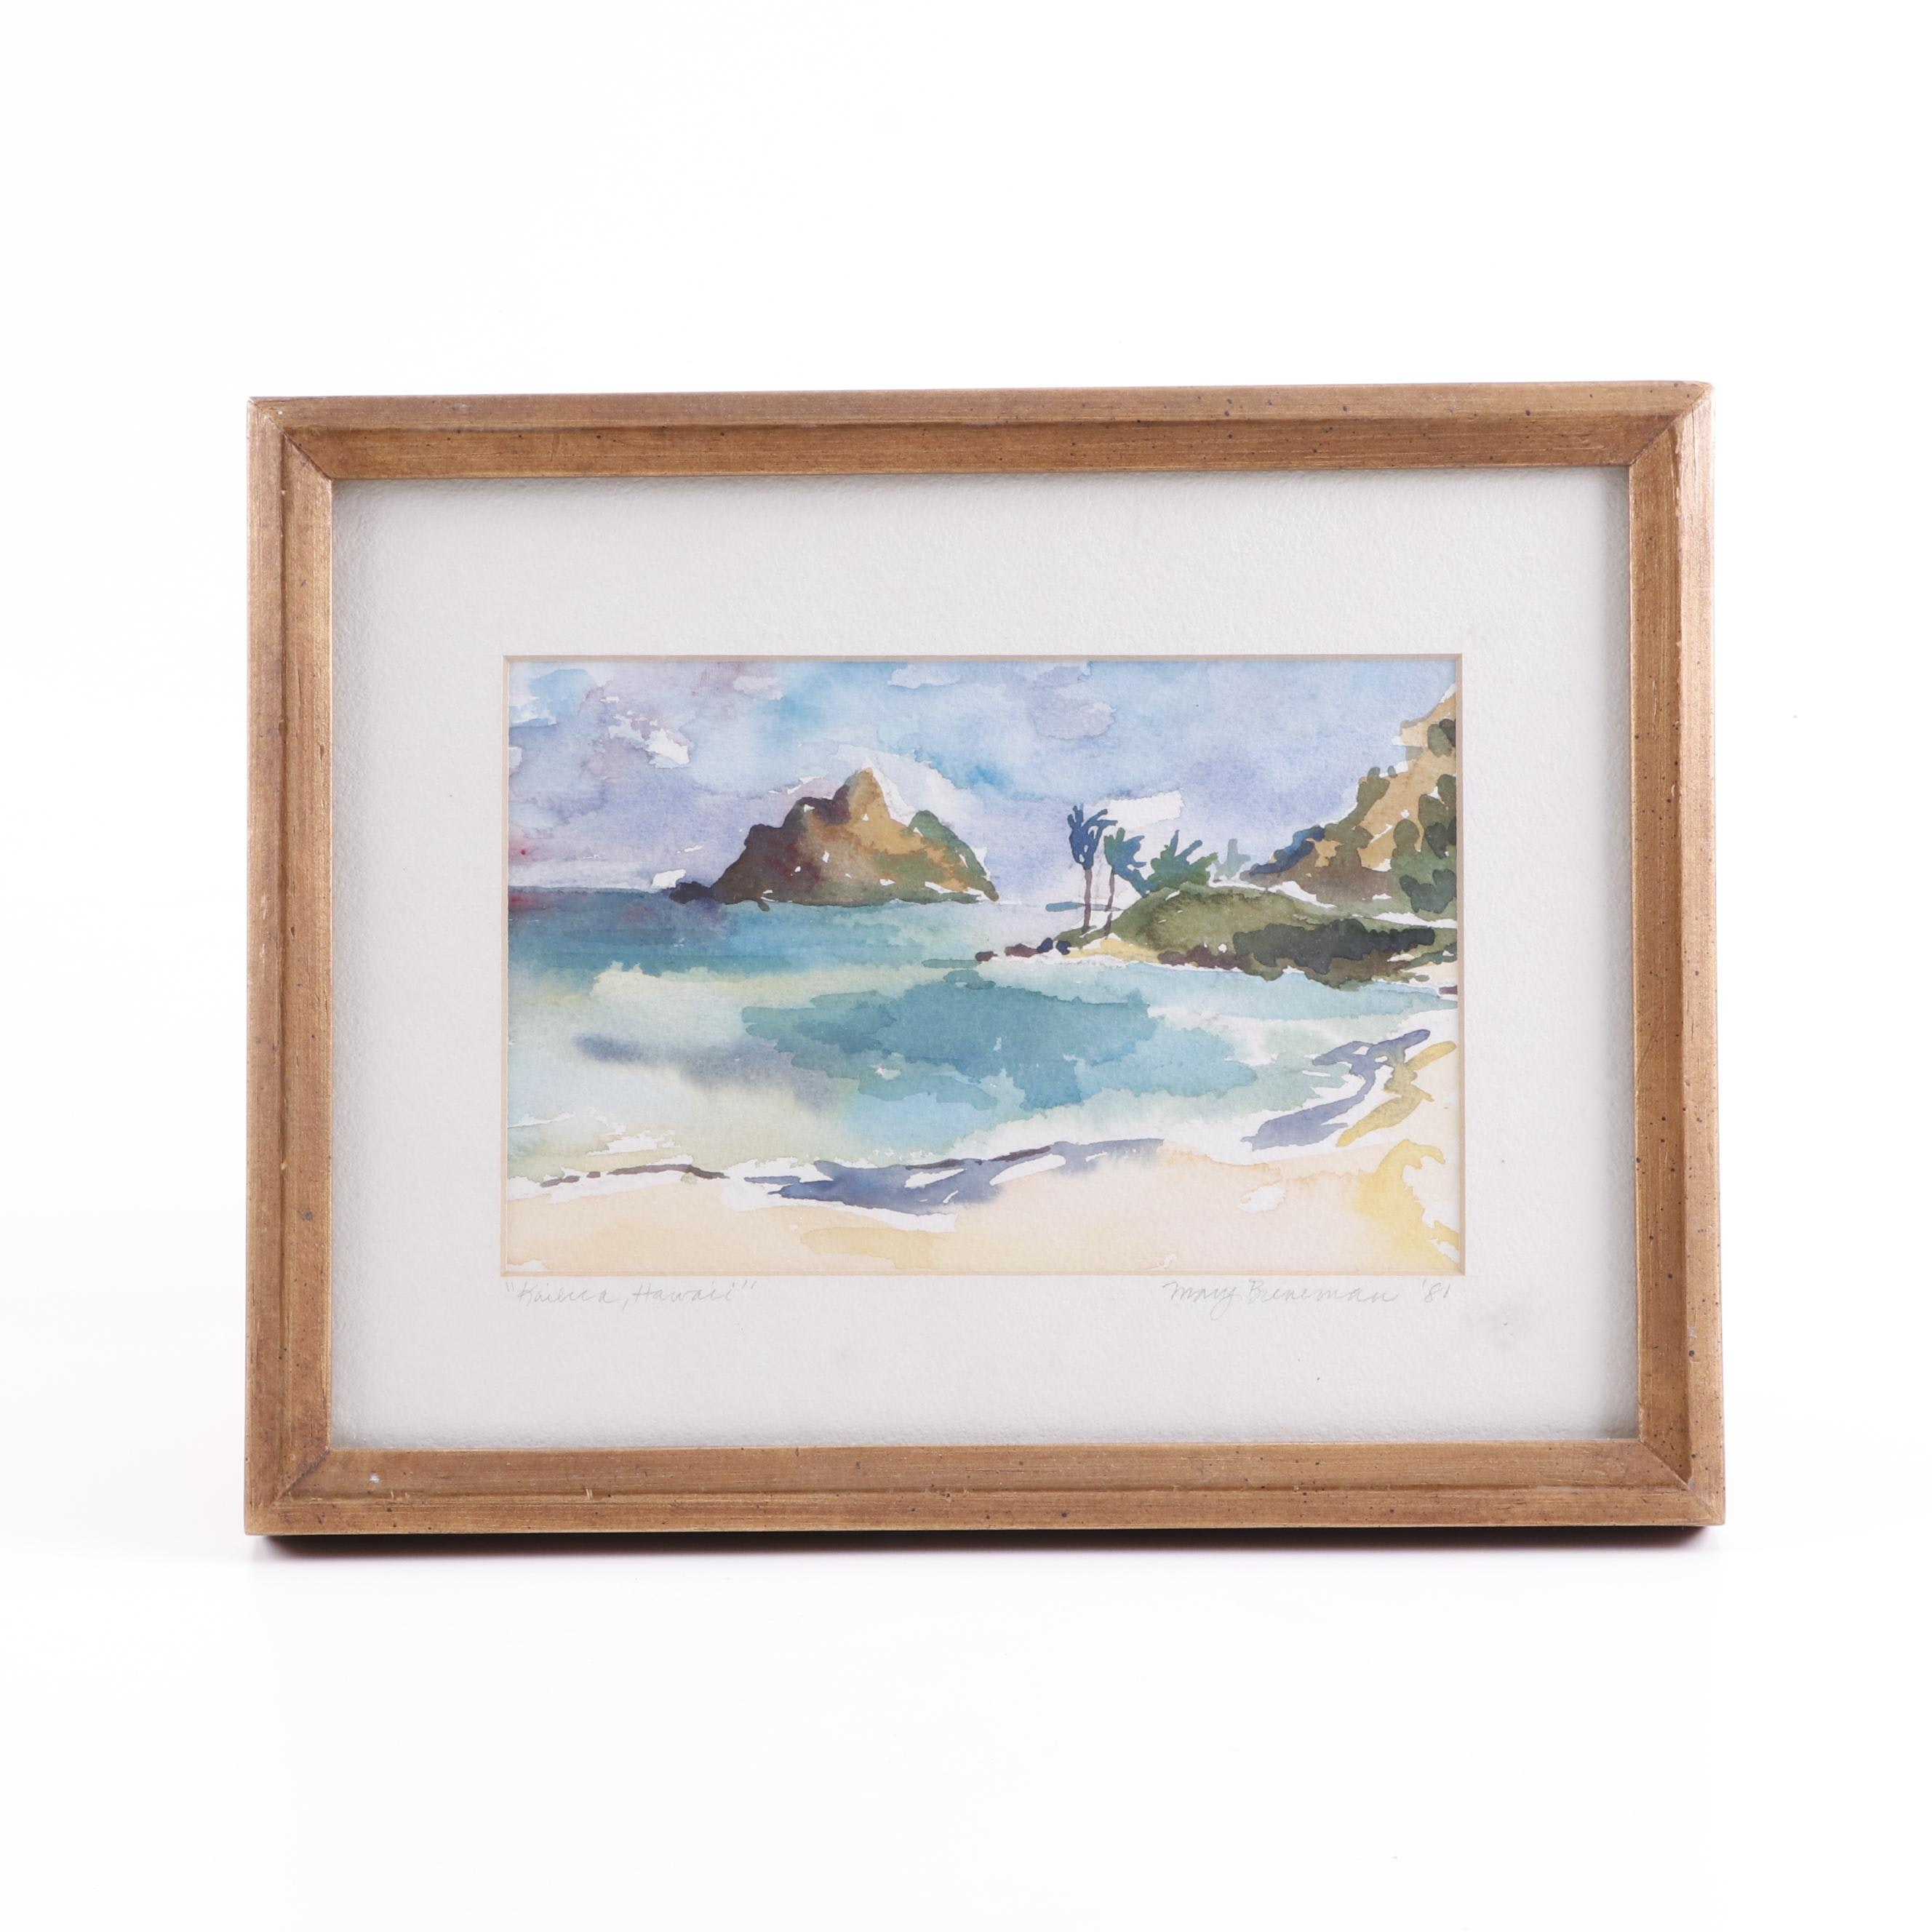 "Mary Breneman Watercolor Painting ""Kailua Hawaii"""